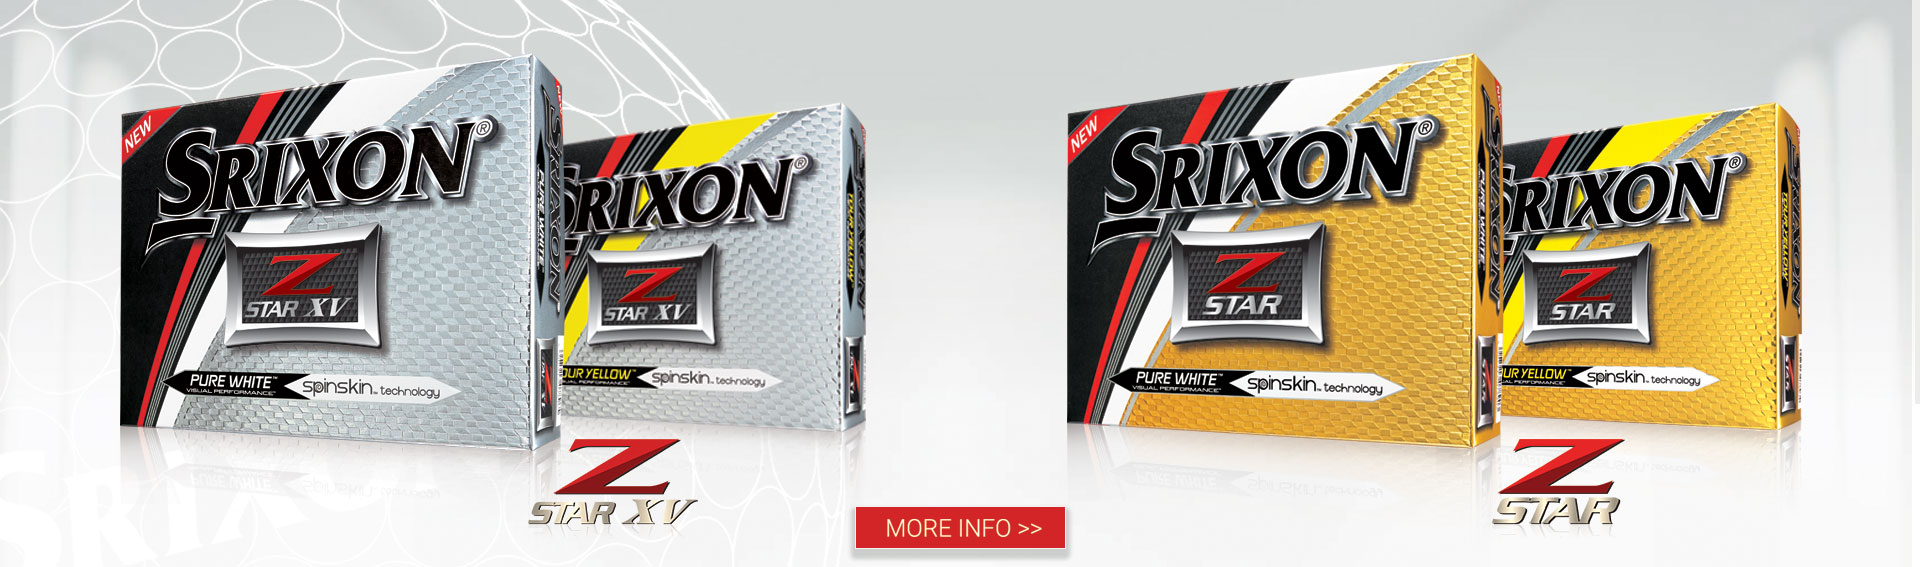 Srixon Z Star and Z Star XZ Golf Balls